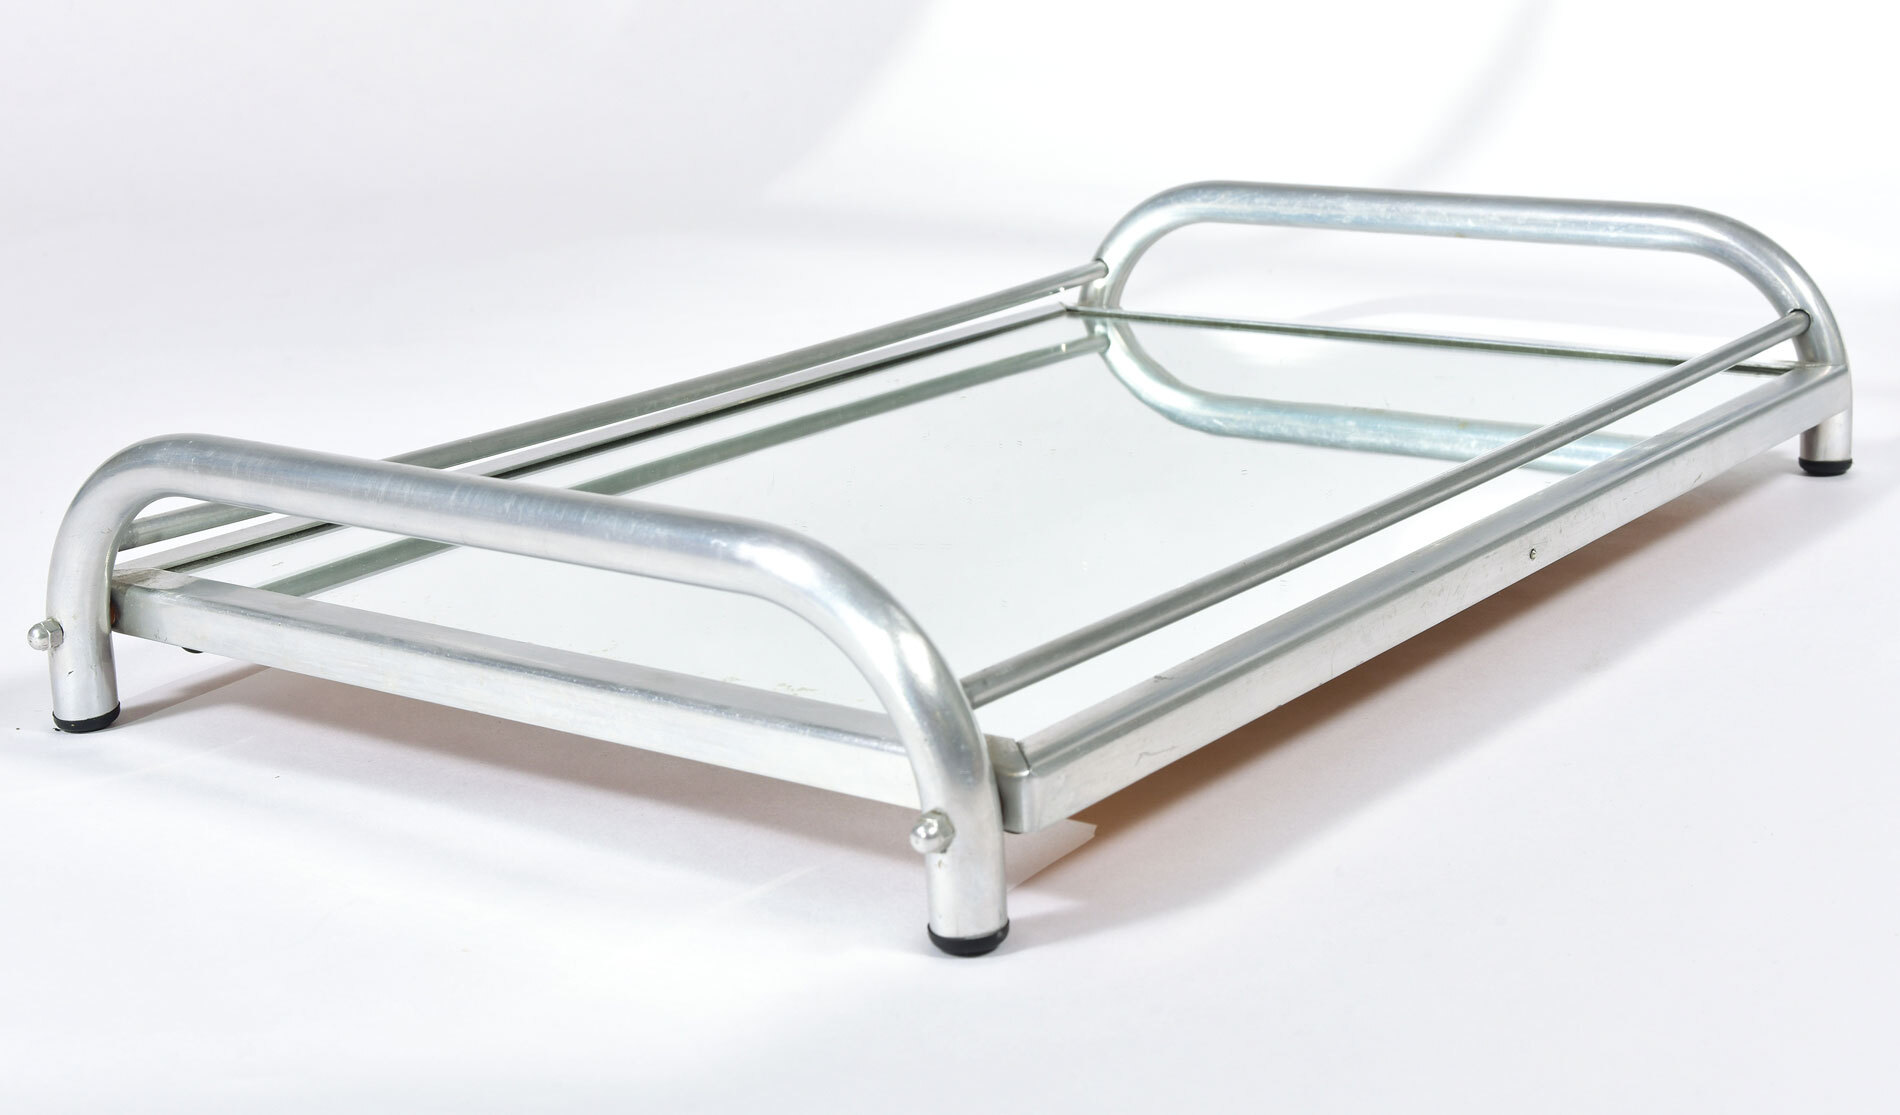 Large Chrome Mirrored Tray 03